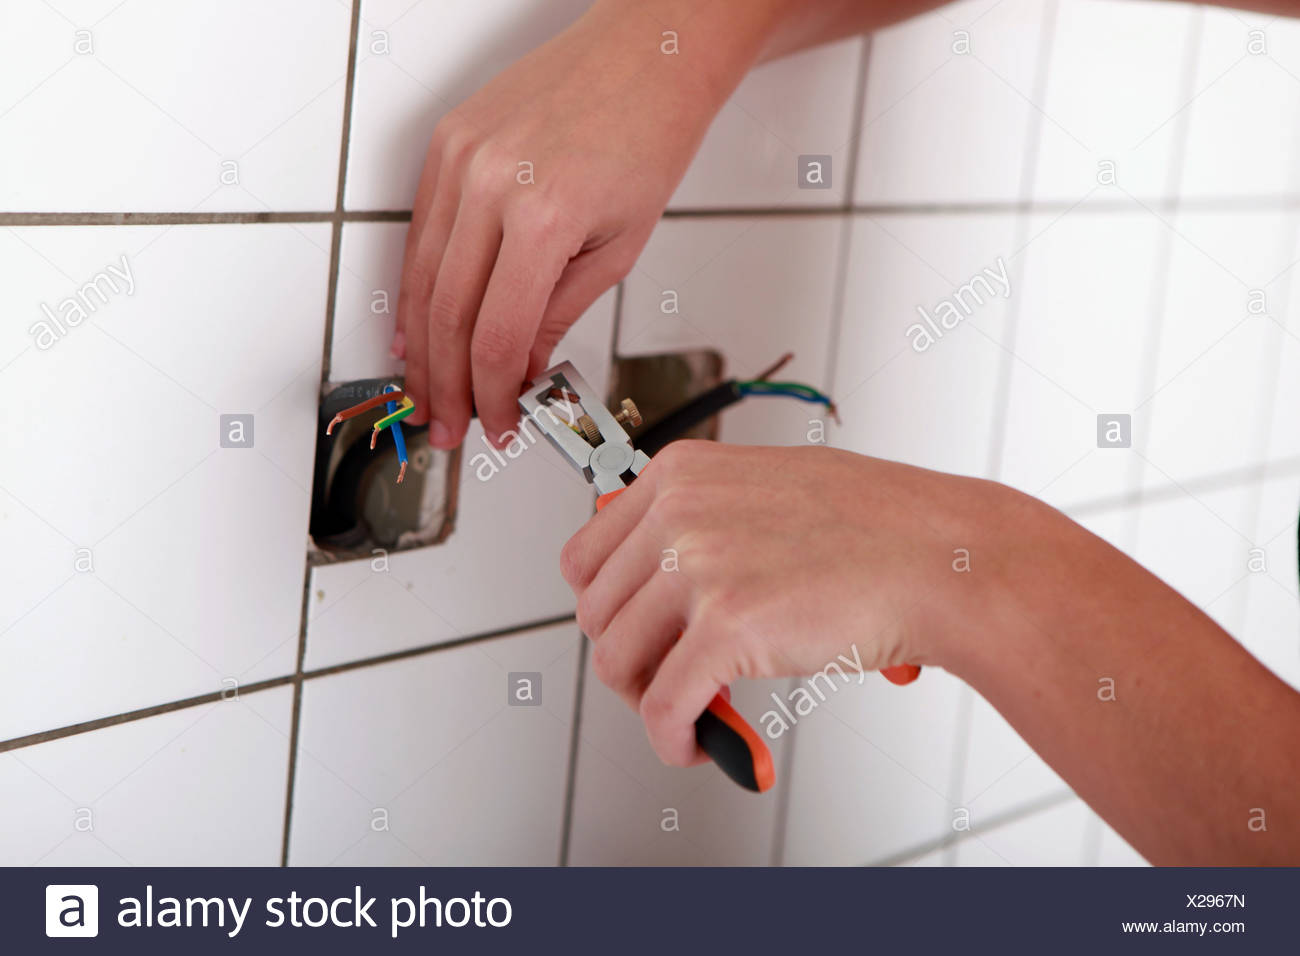 close-up of someone using a stripping plier for an electrical outlet - Stock Image